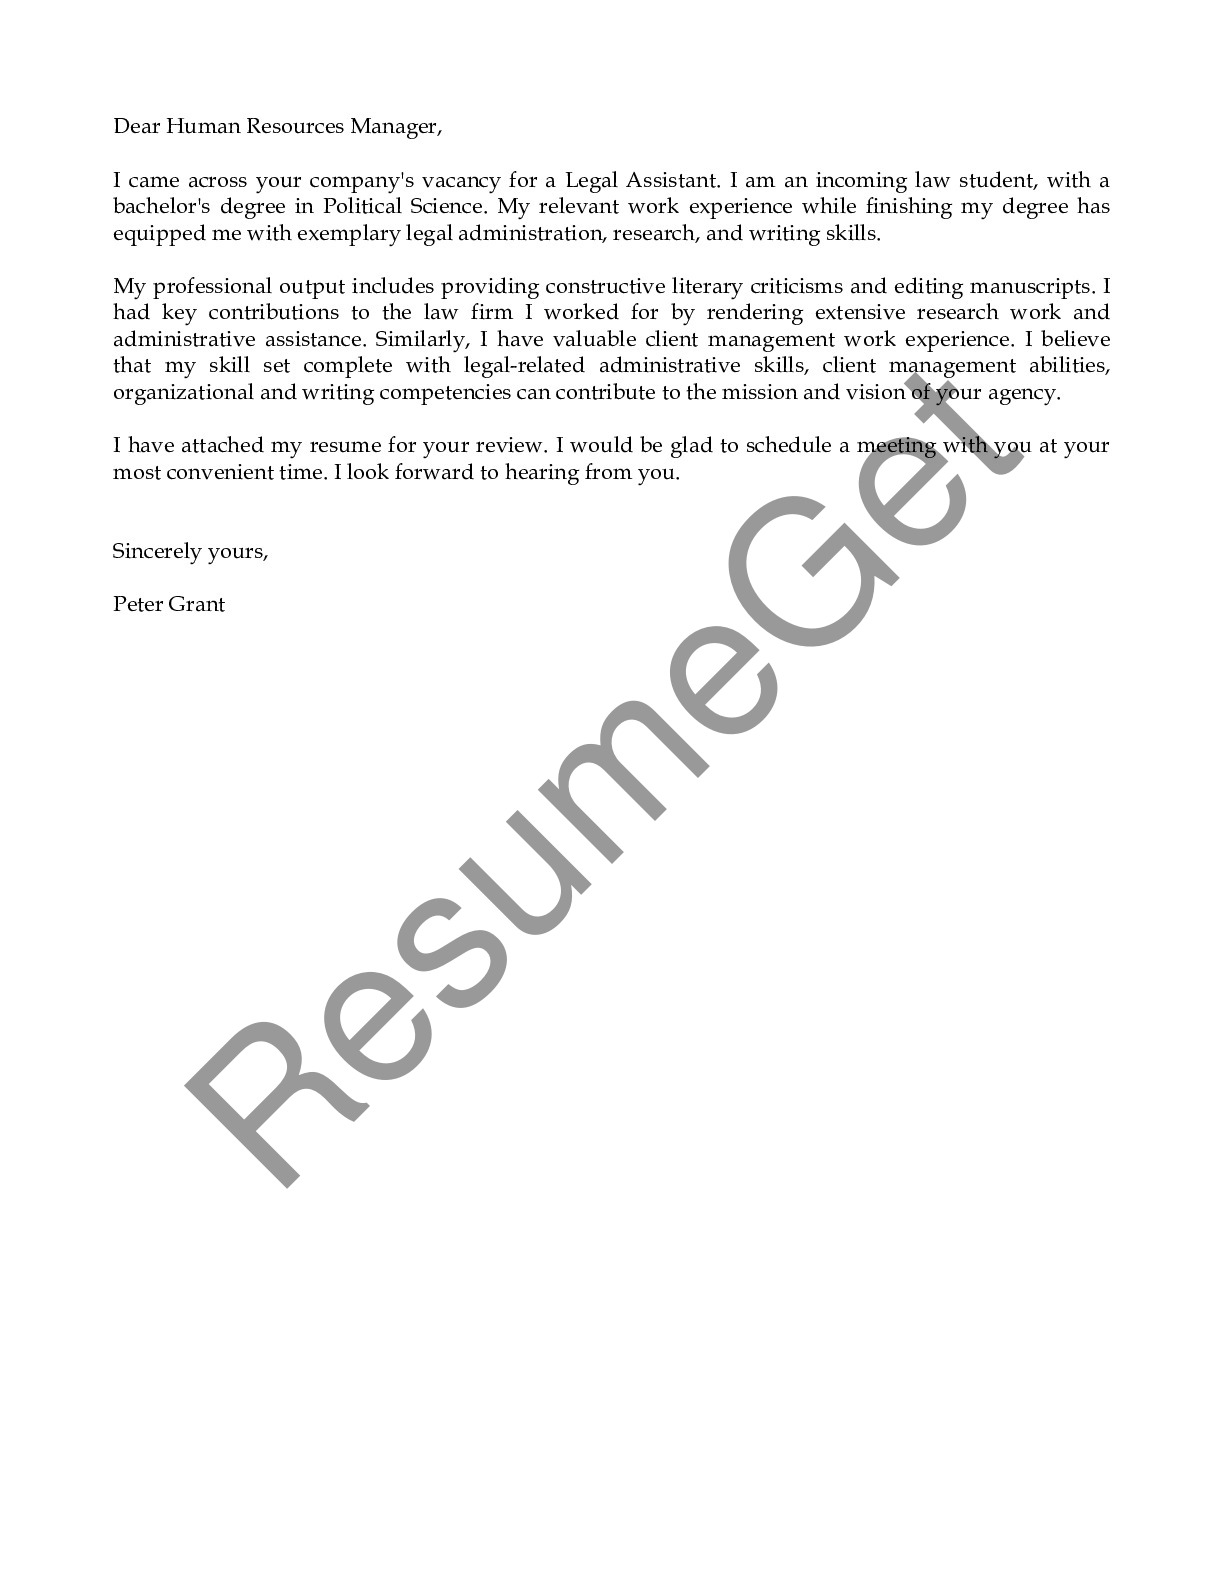 Email Cover Letter for Legal Assistant